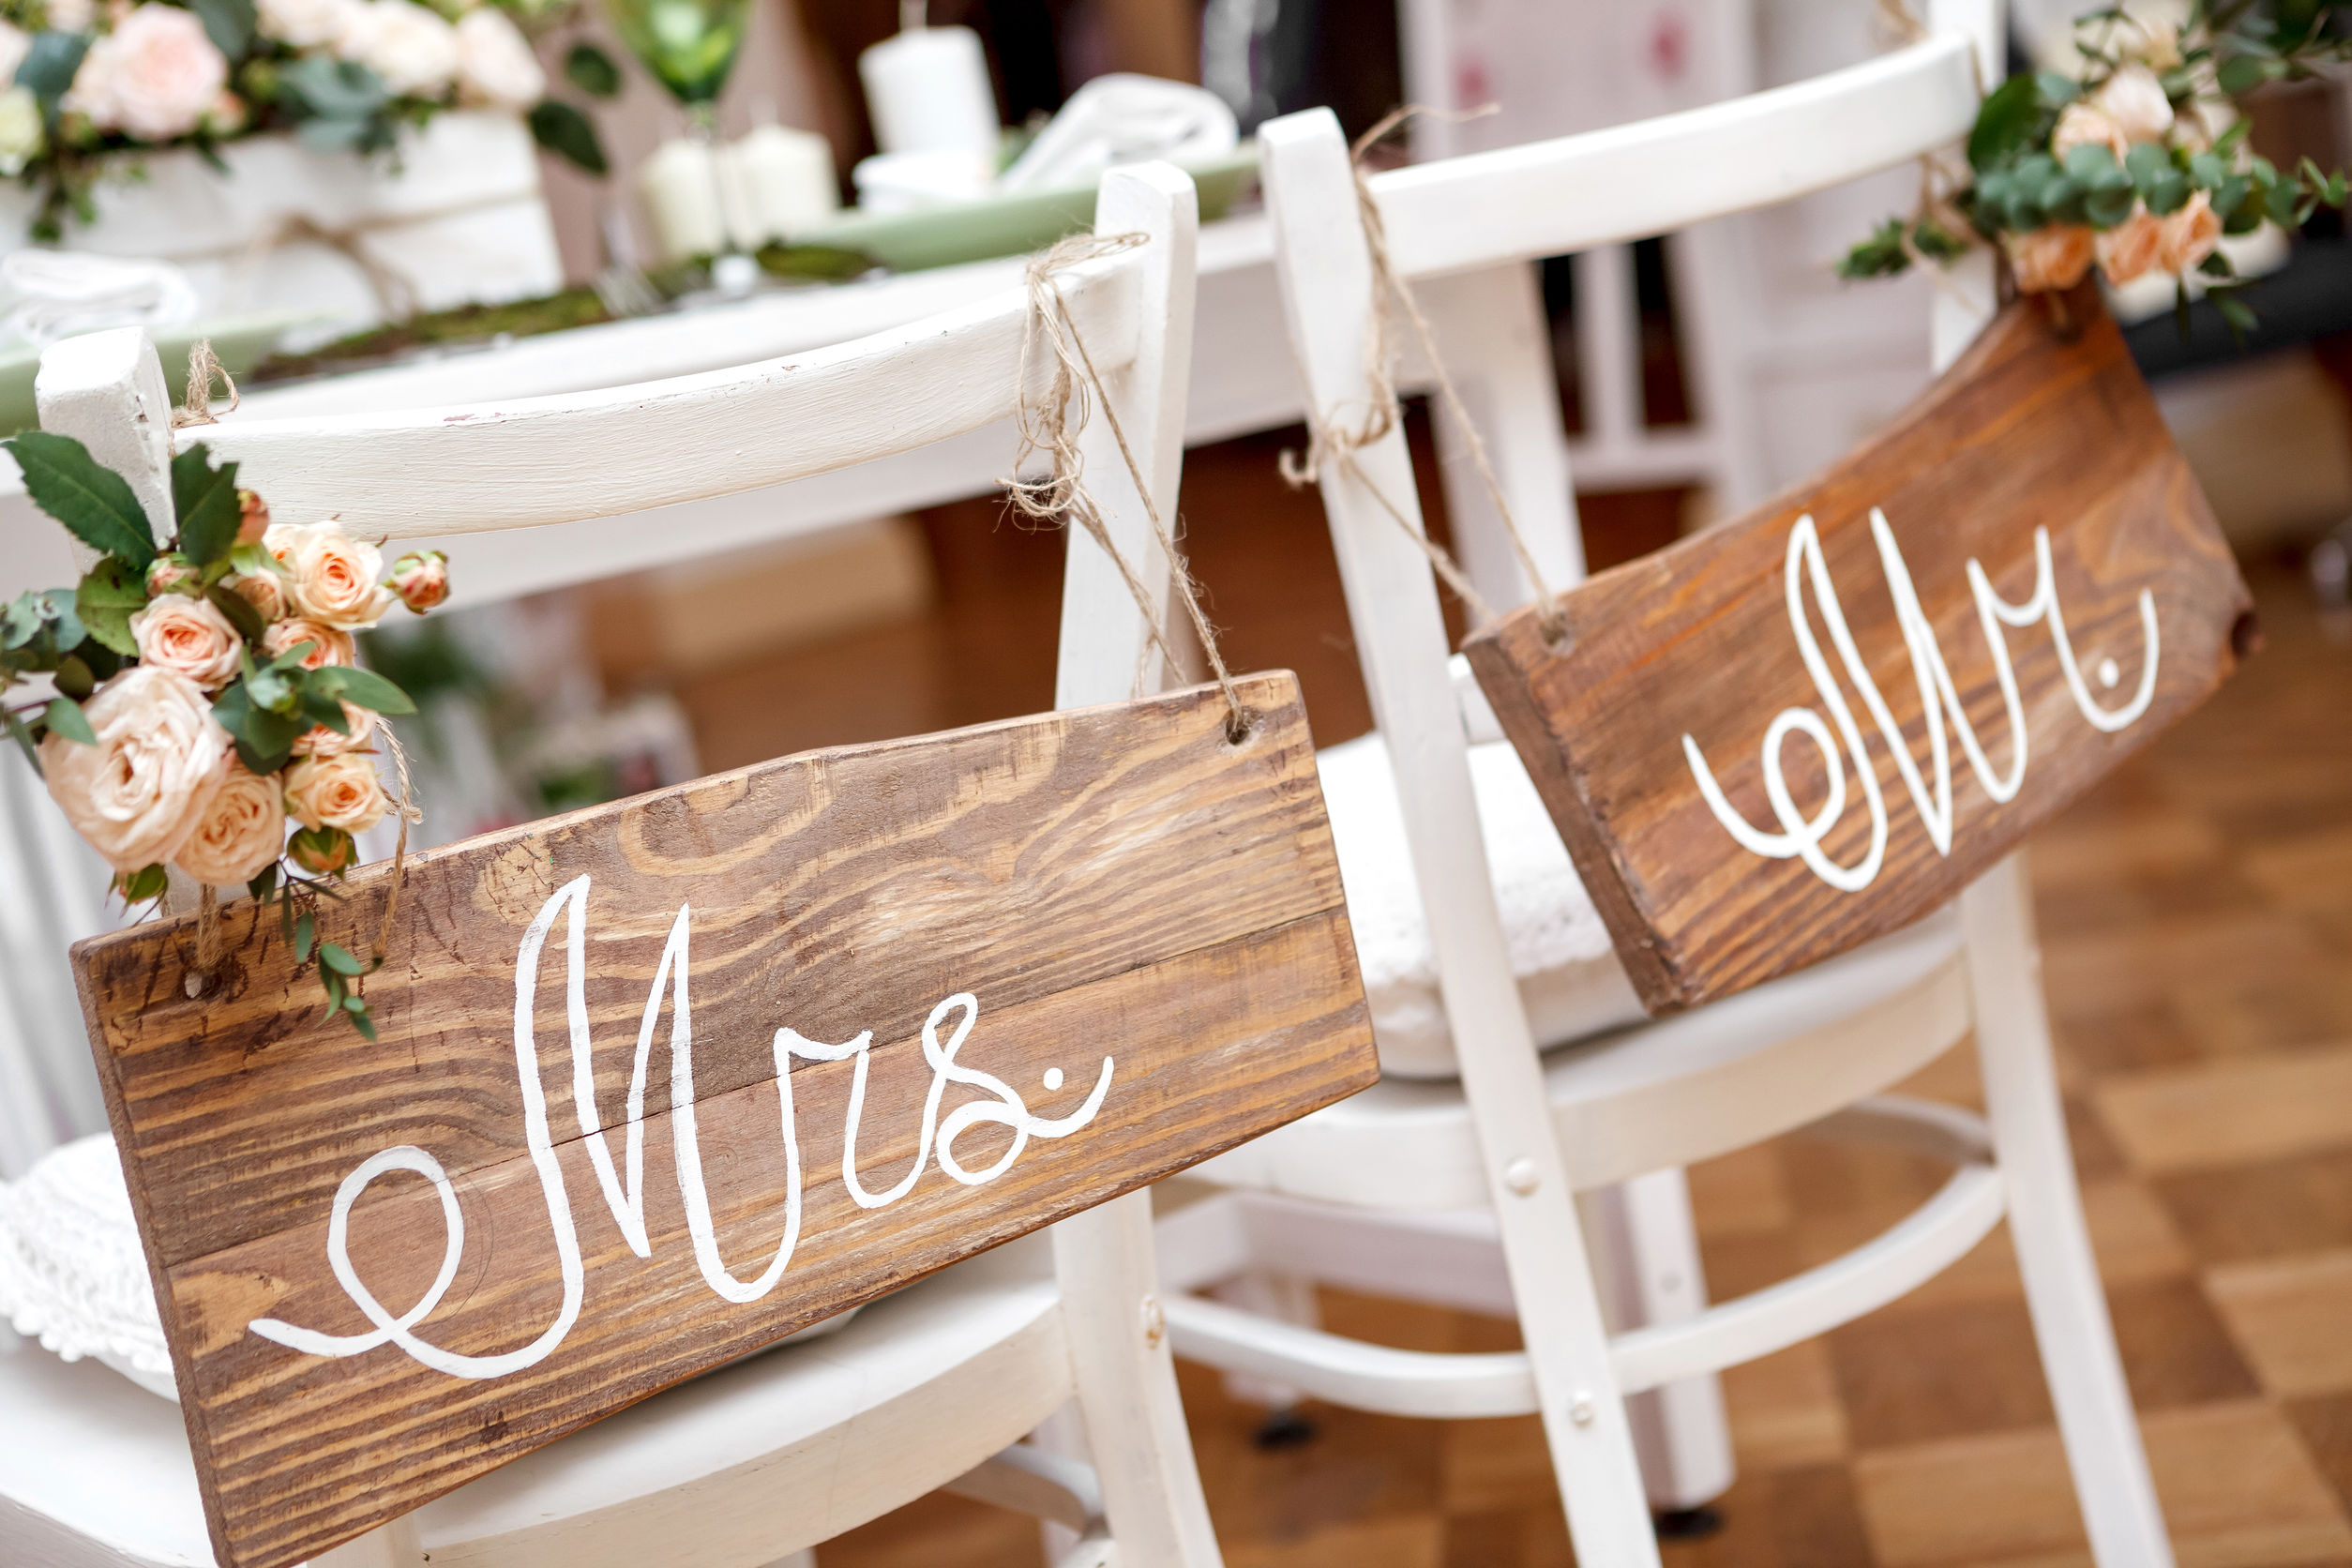 Wedding Catering Near me. A photo of a rustic barn wedding with Mr and Mrs signs oin the chairs.